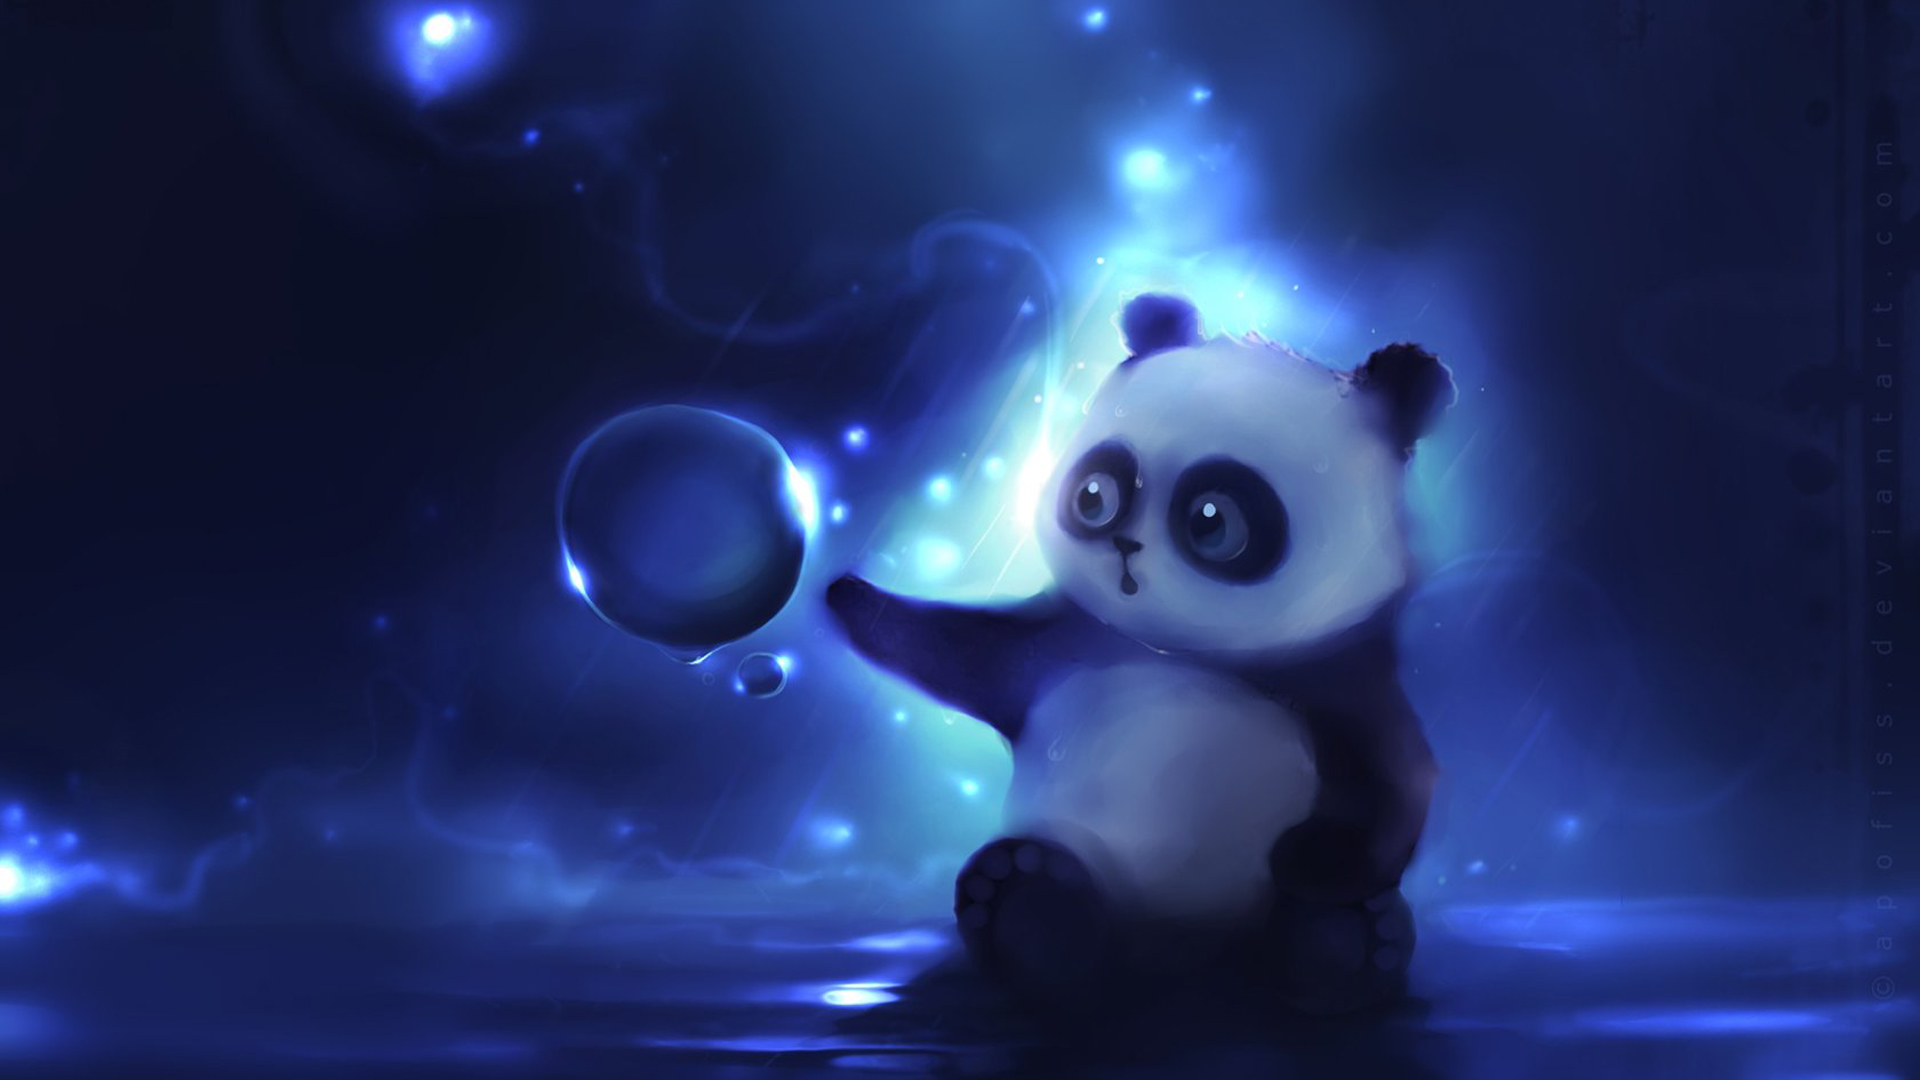 Panda Bears Wallpaper 1920x1080 Panda Bears Apofiss 1920x1080